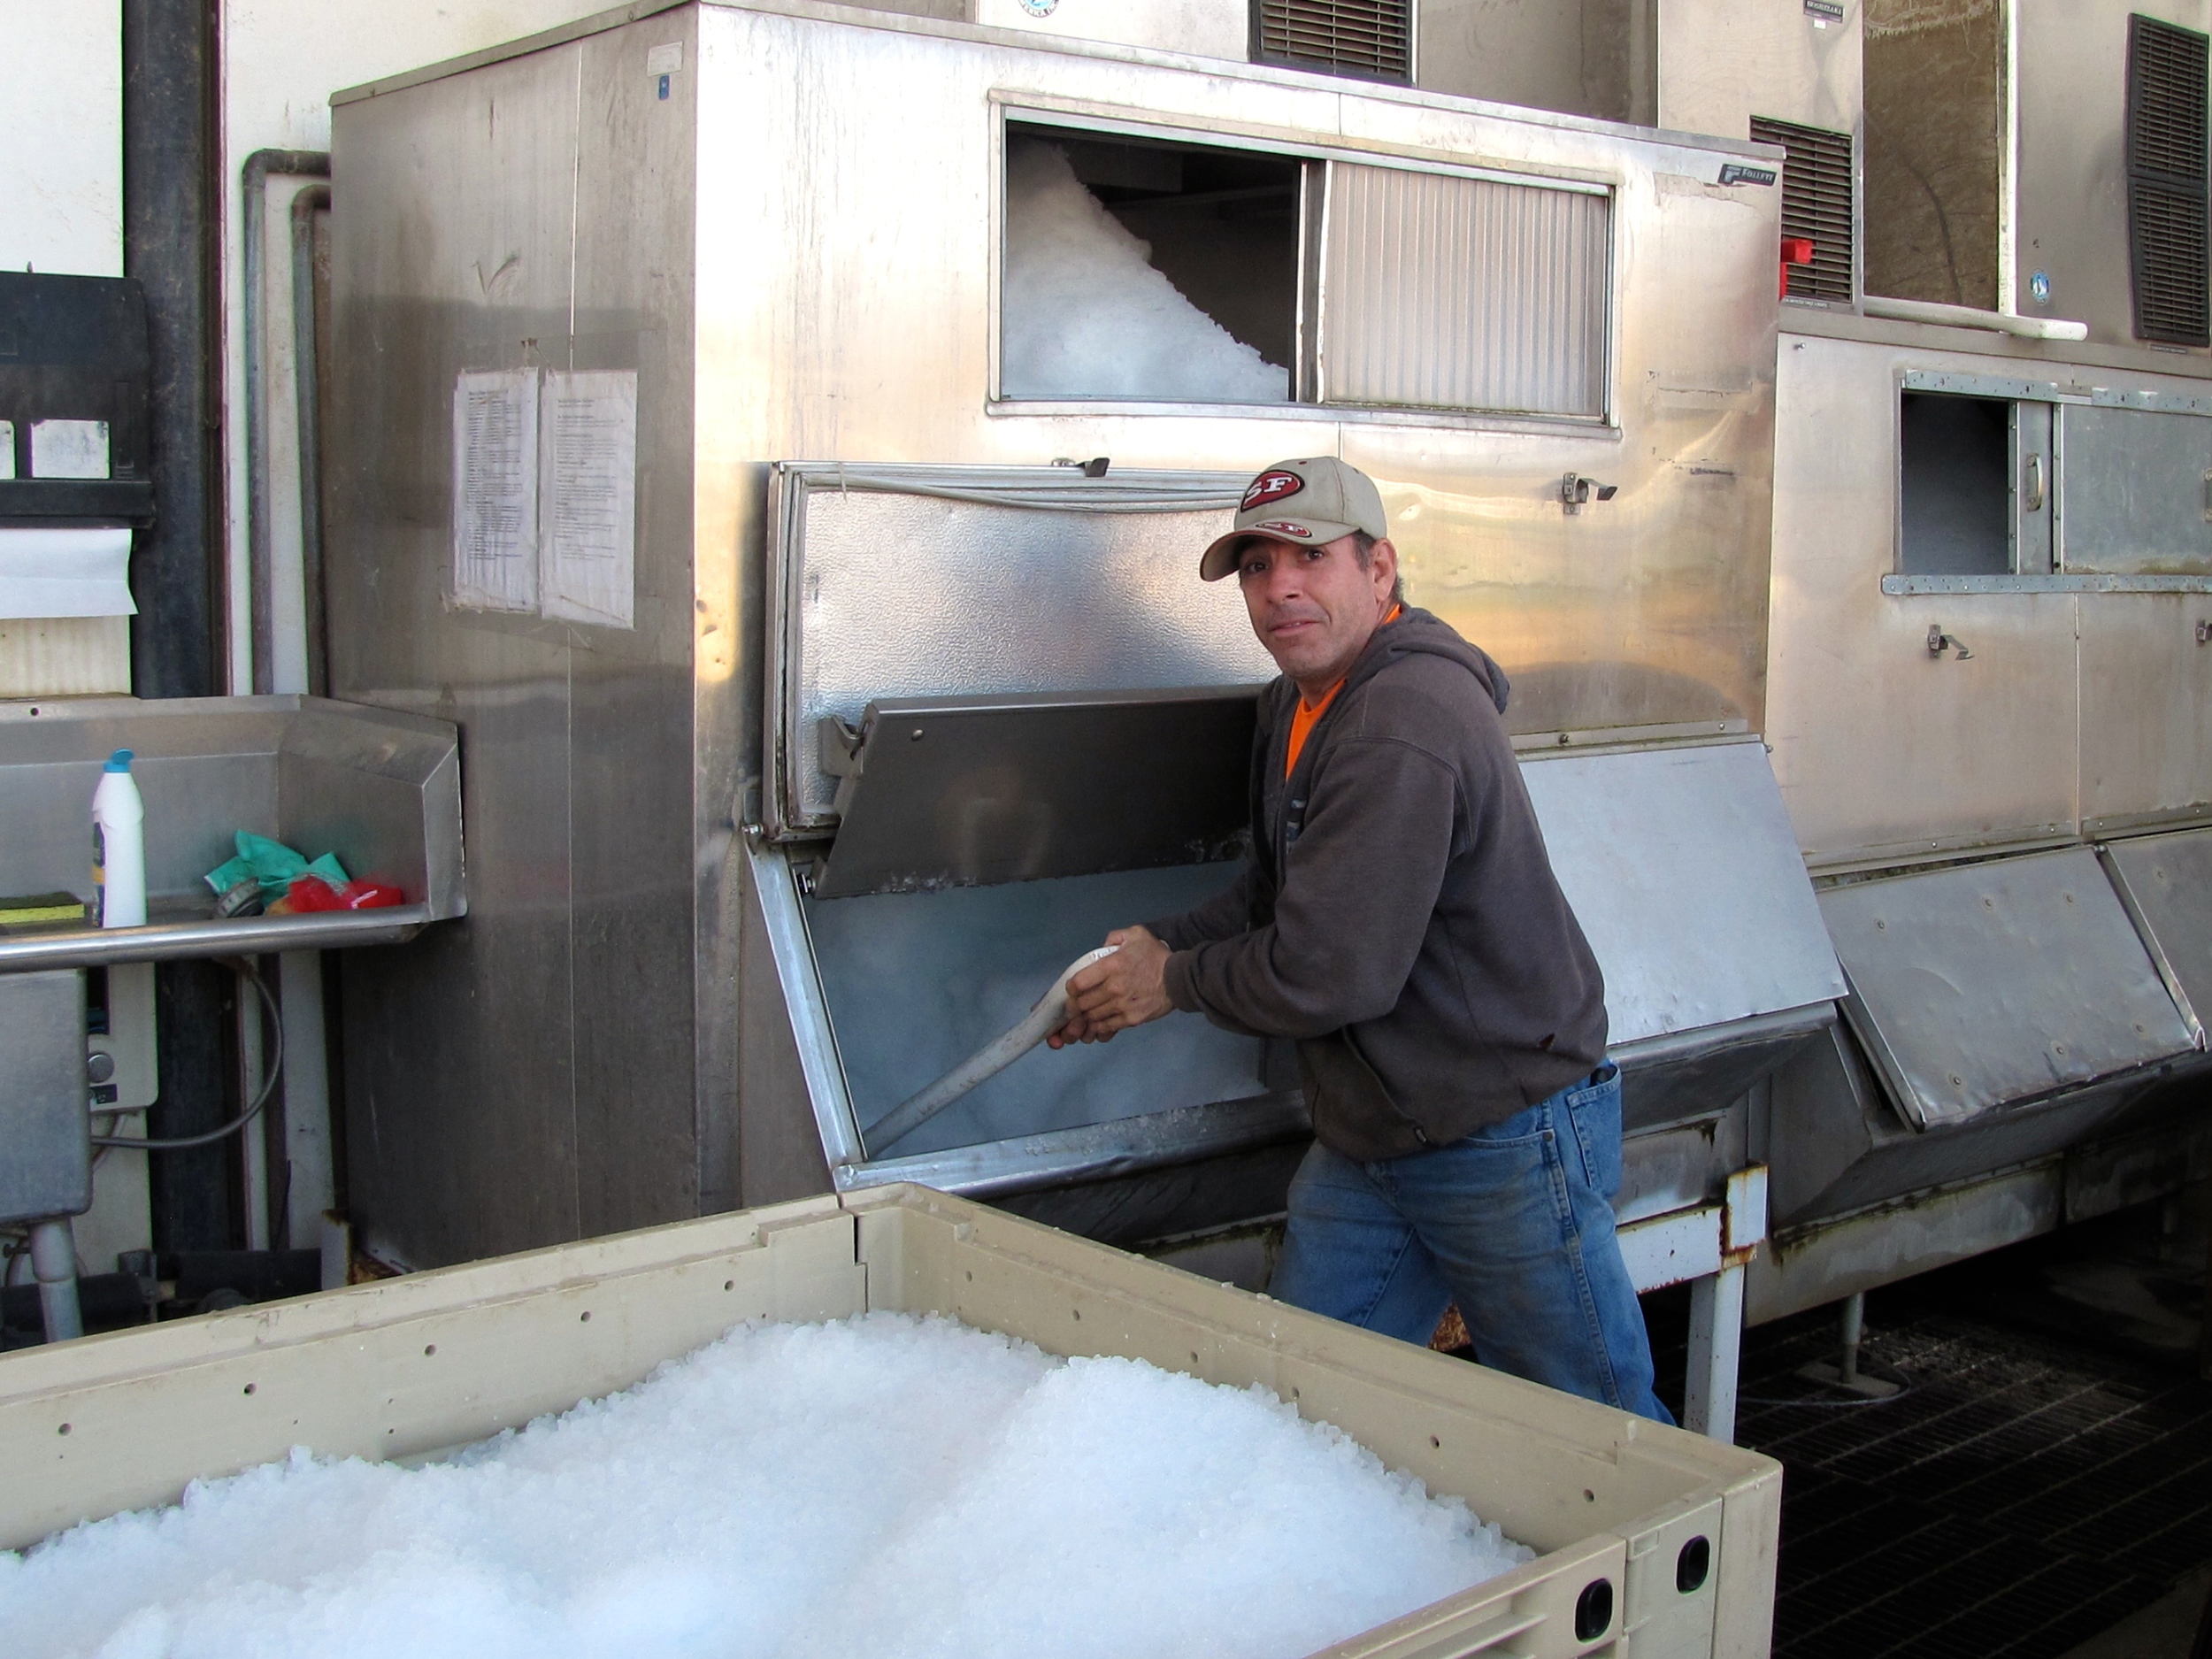 Gera preparing ice to be packed with a vegetable order